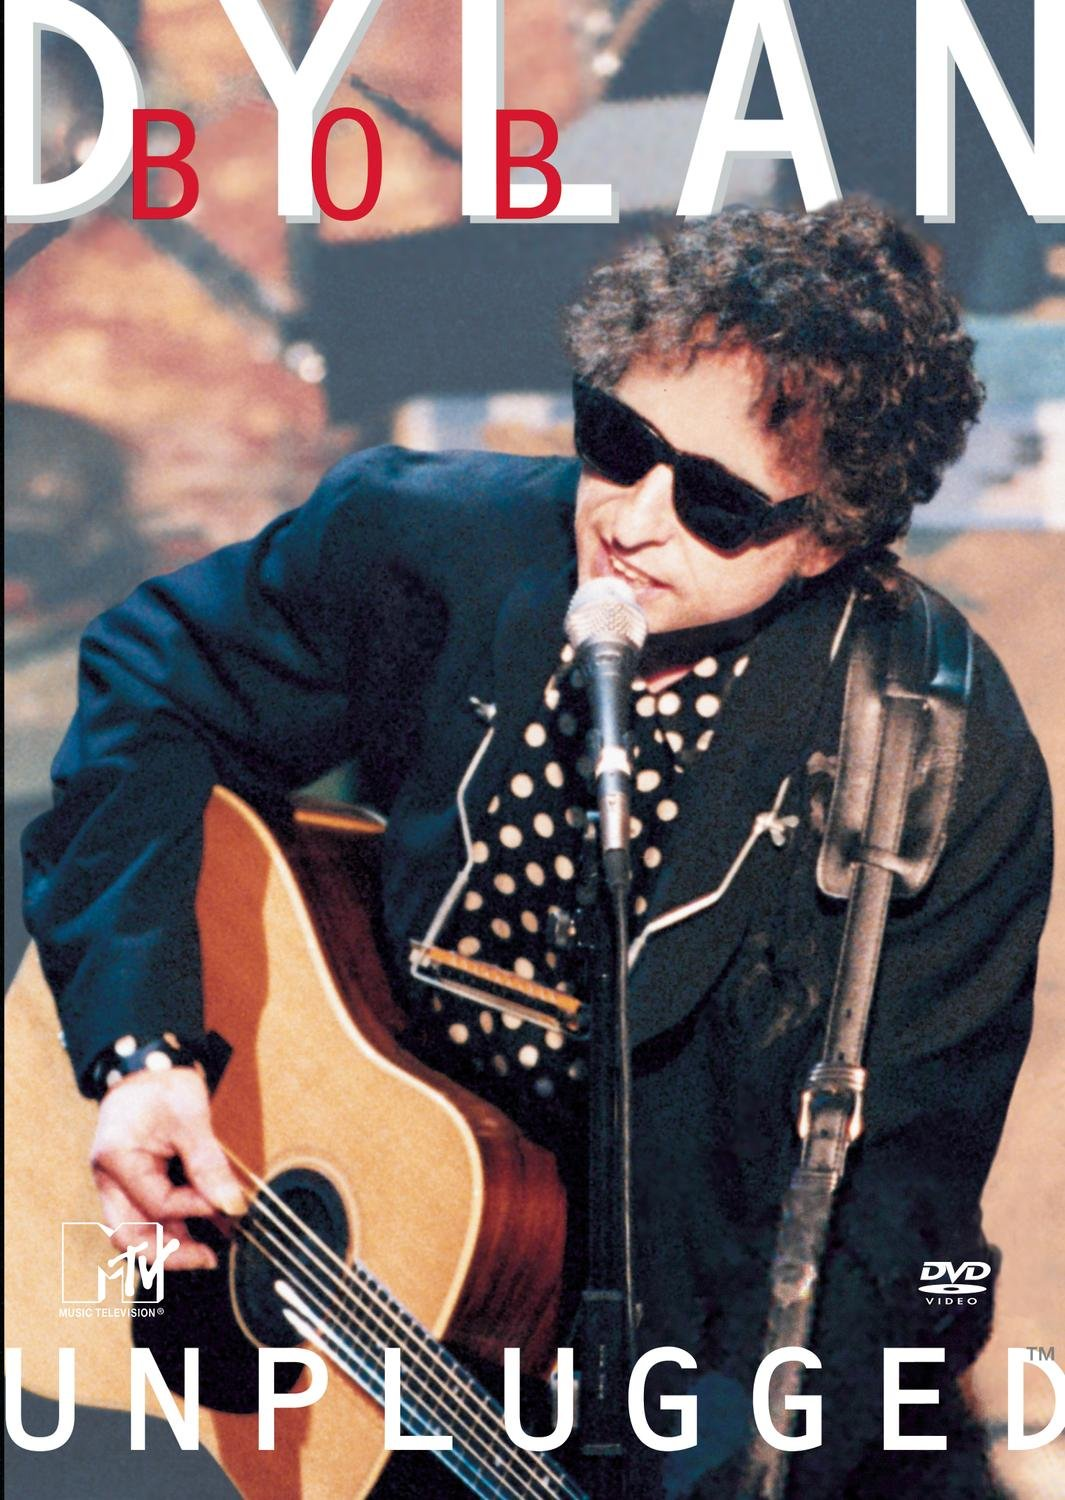 Bob Dylan: Unplugged by Sony Music